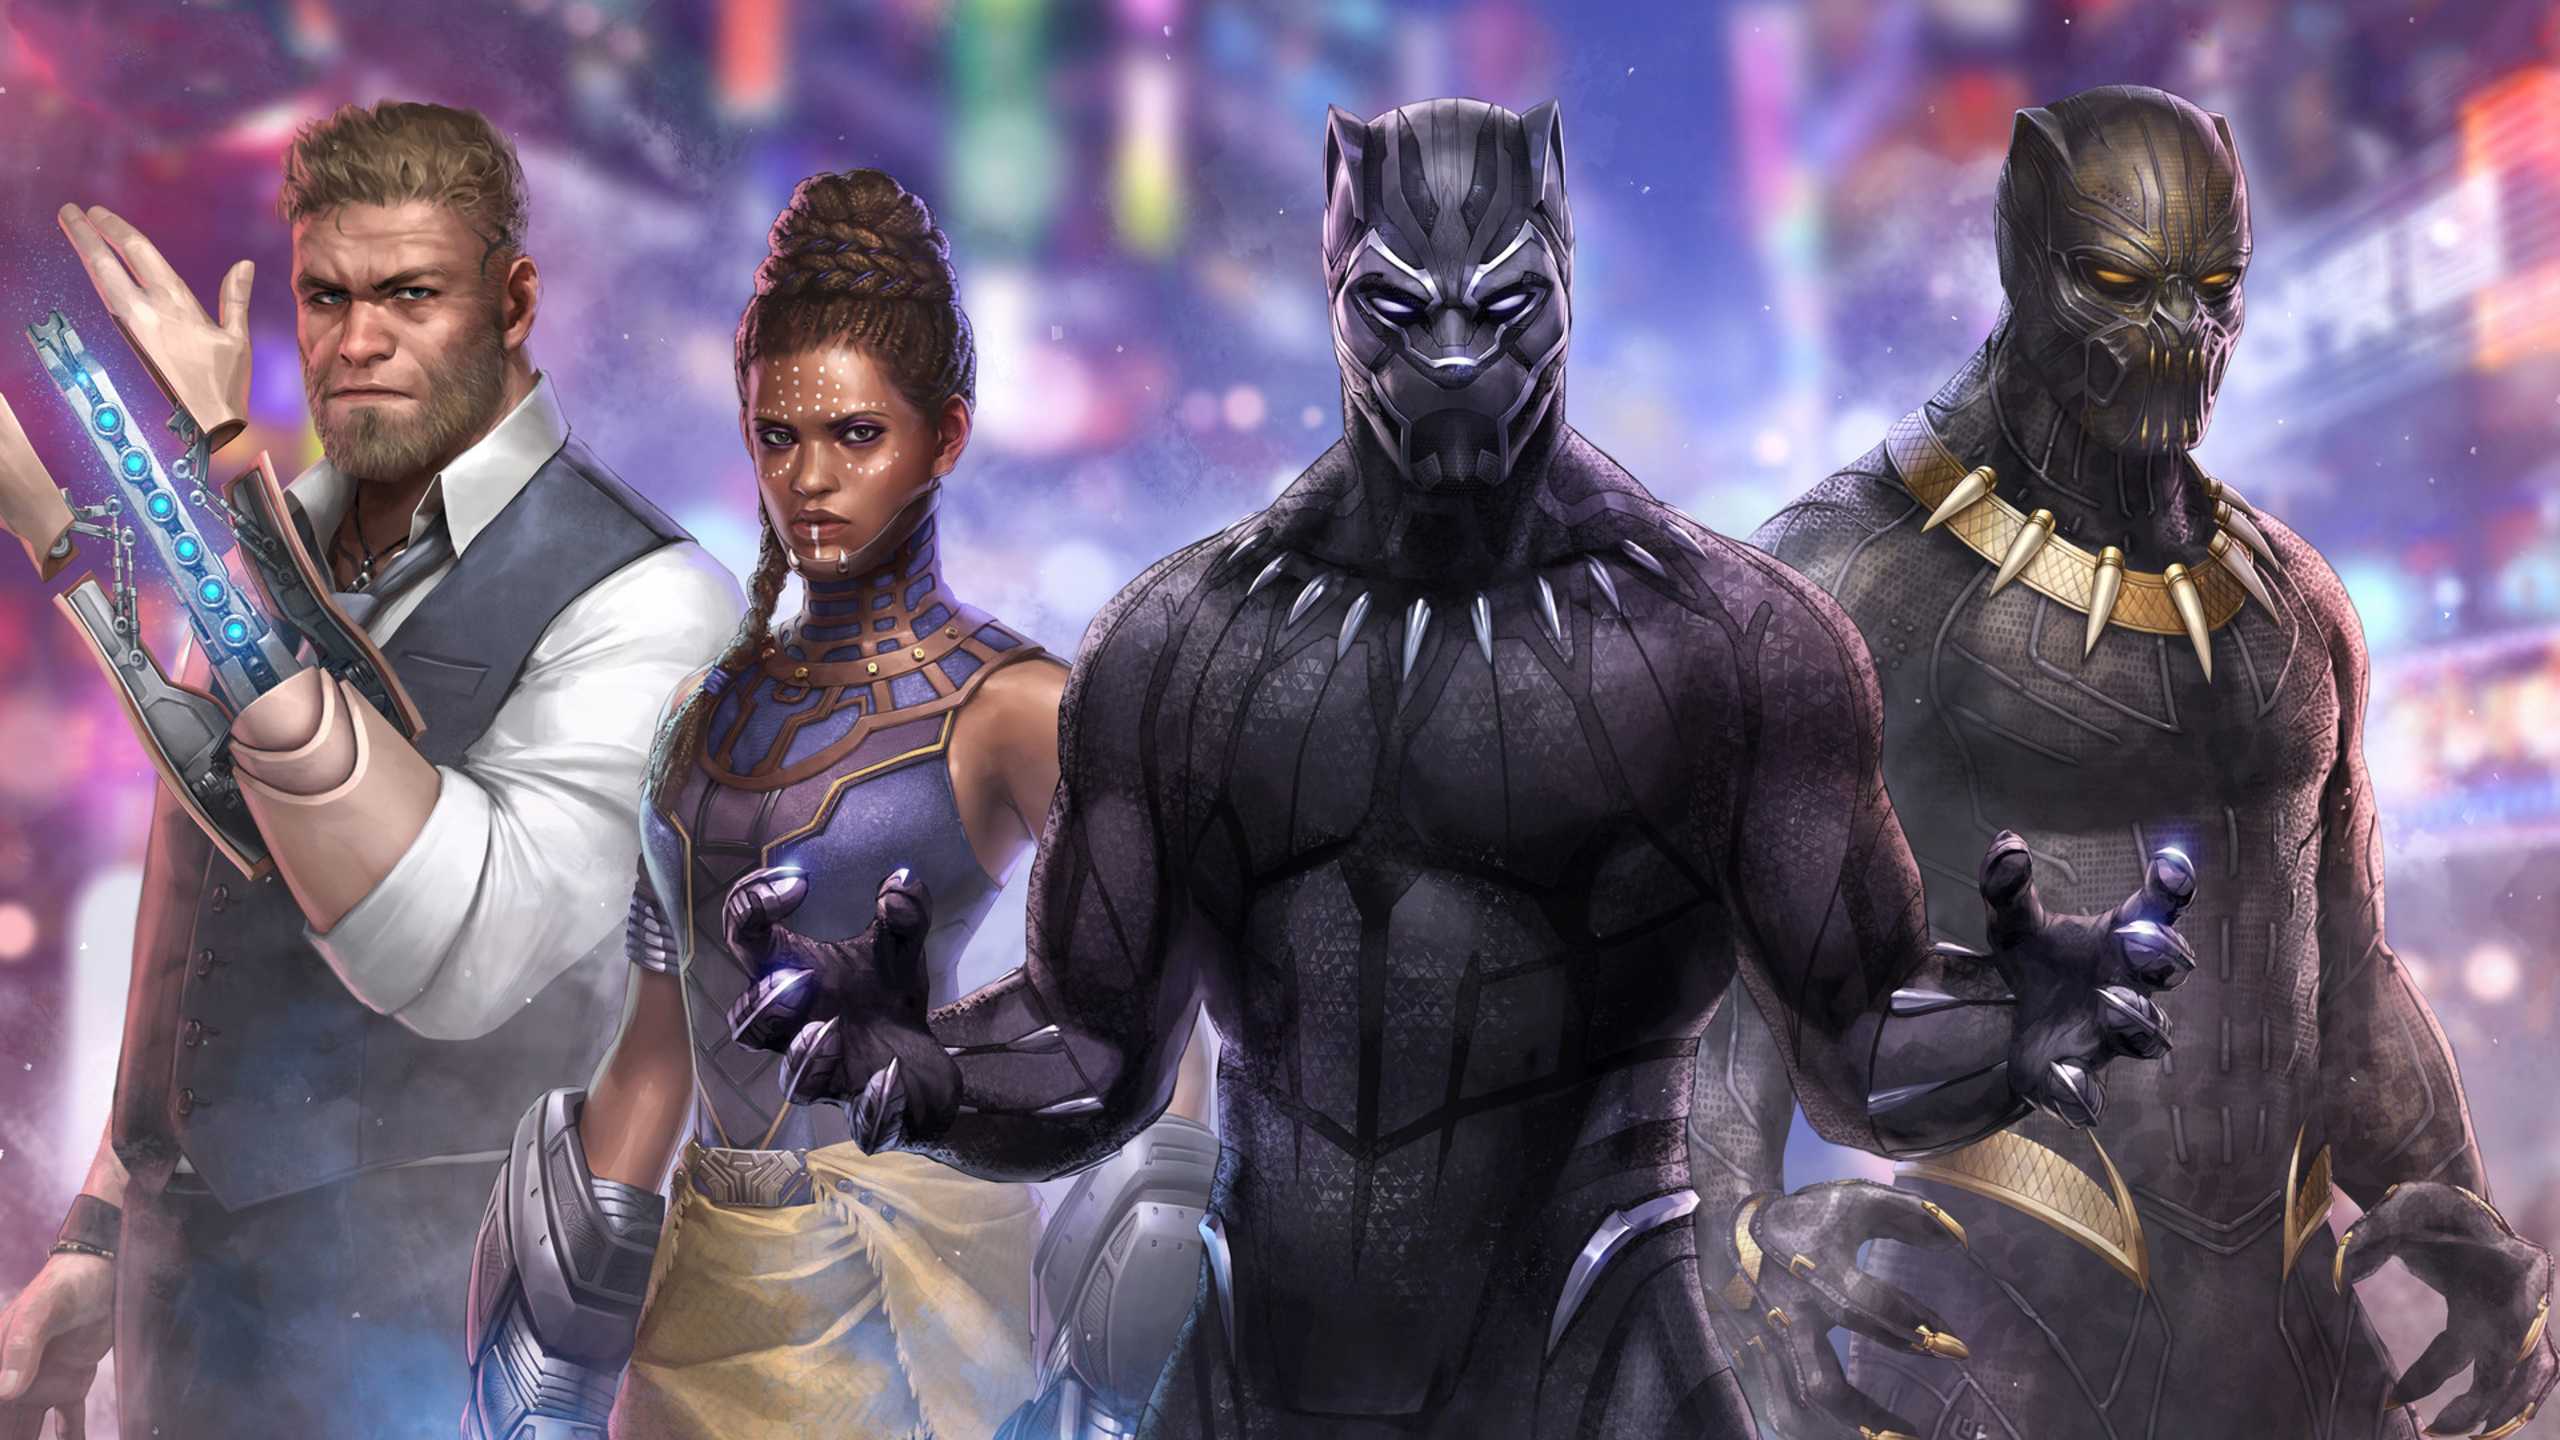 2560x1440 Black Panther Marvel Fight 1440p Resolution Hd 4k